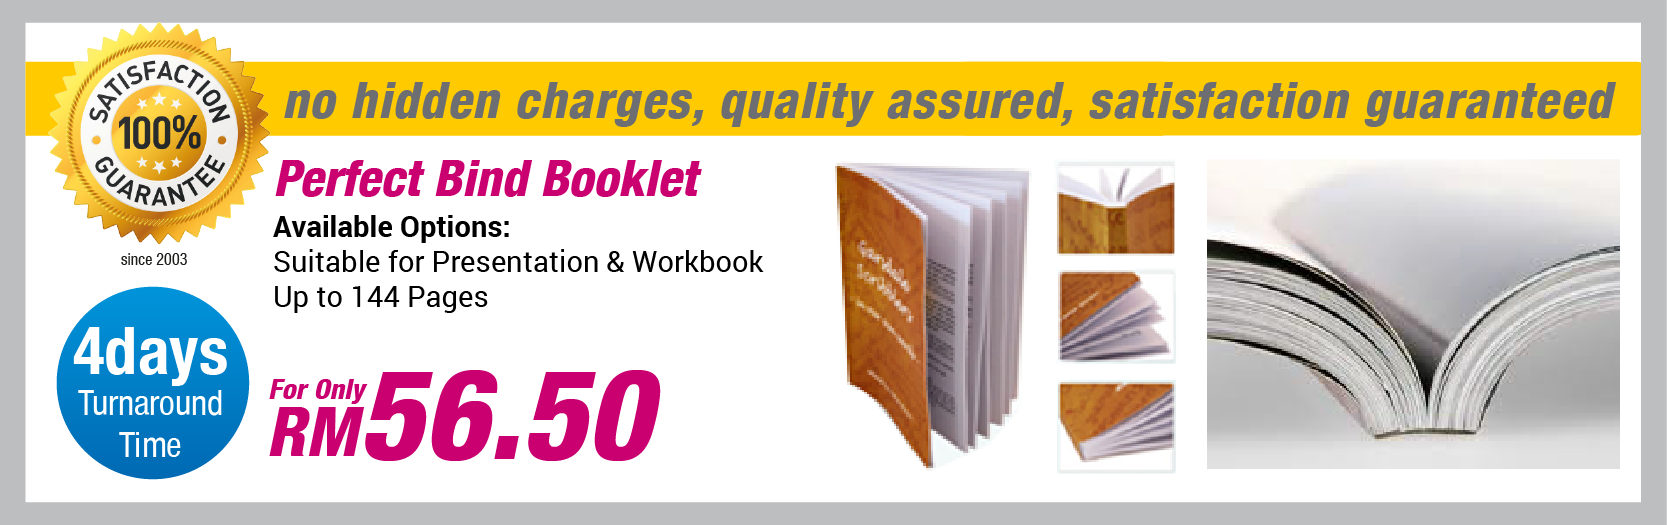 Perfect Bind Booklet Can Be Printed Either In Color Of Black And White Finish With Glue On Spine Which Make It Look Neat A Booklet Booklet Printing Book Print